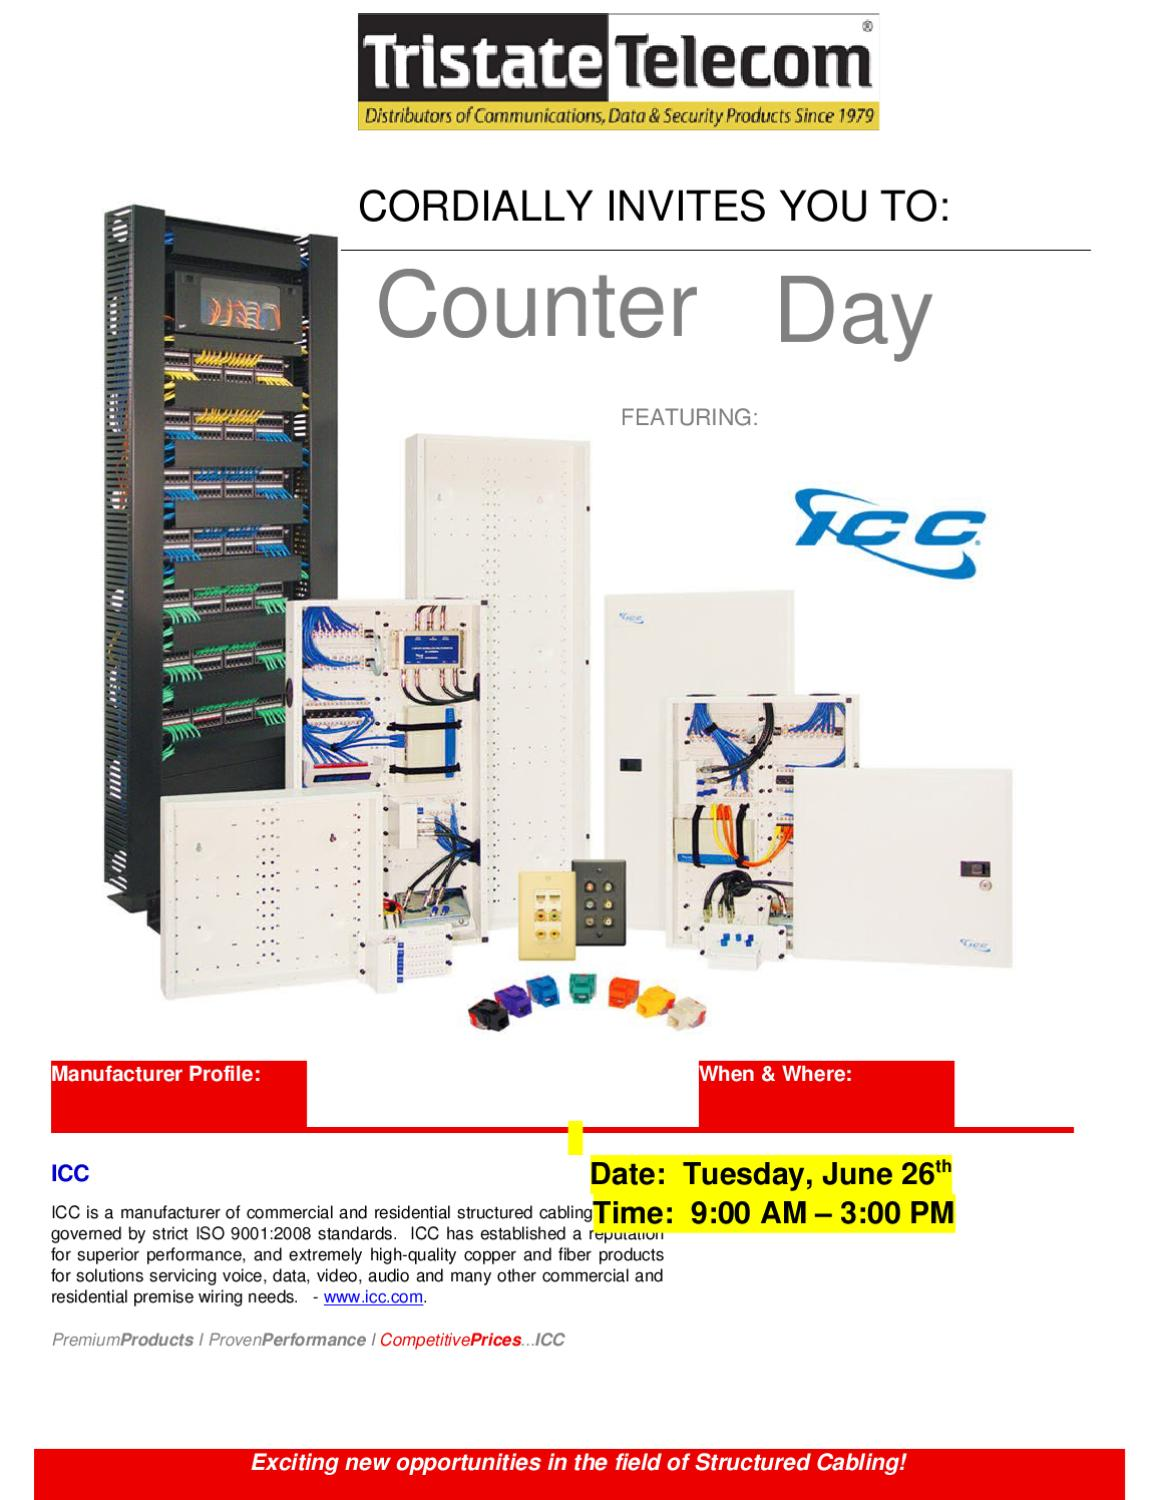 ICC Counter Day @Tristate Telecom by Tristate Telecom Inc. - issuu on